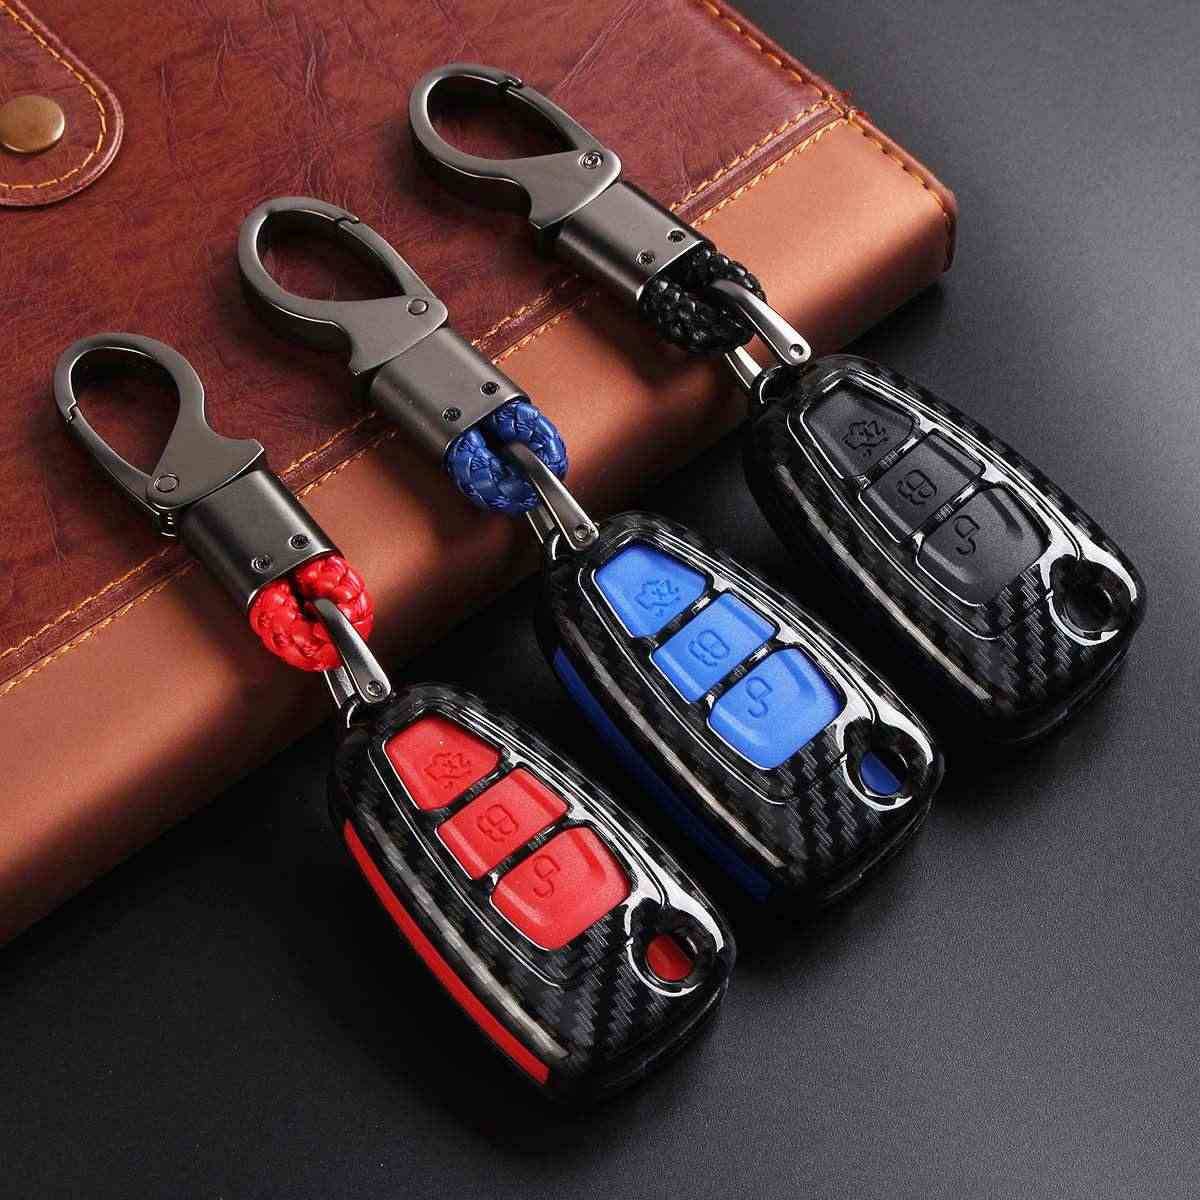 TANGSEN Key Fob Case for FORD C-MAX ESCAPE FIESTA FOCUS RS FUSION 3 Button Keyless Entry Remote Carbon Fiber Pattern ABS Blue Silicone Cover